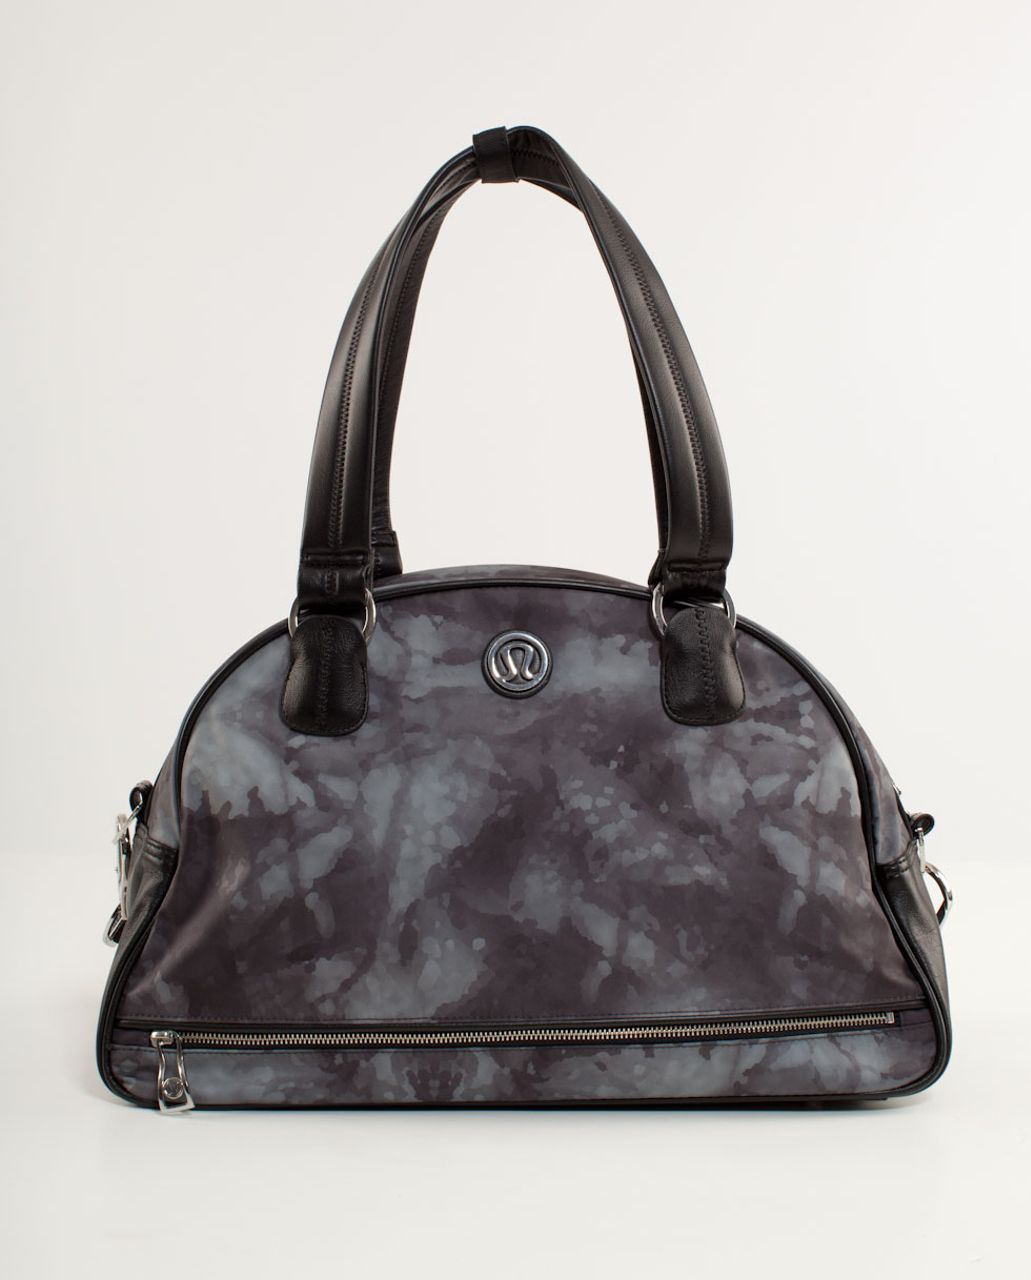 Lululemon Still Groovy Bag - Deep Coal Creekside Camo